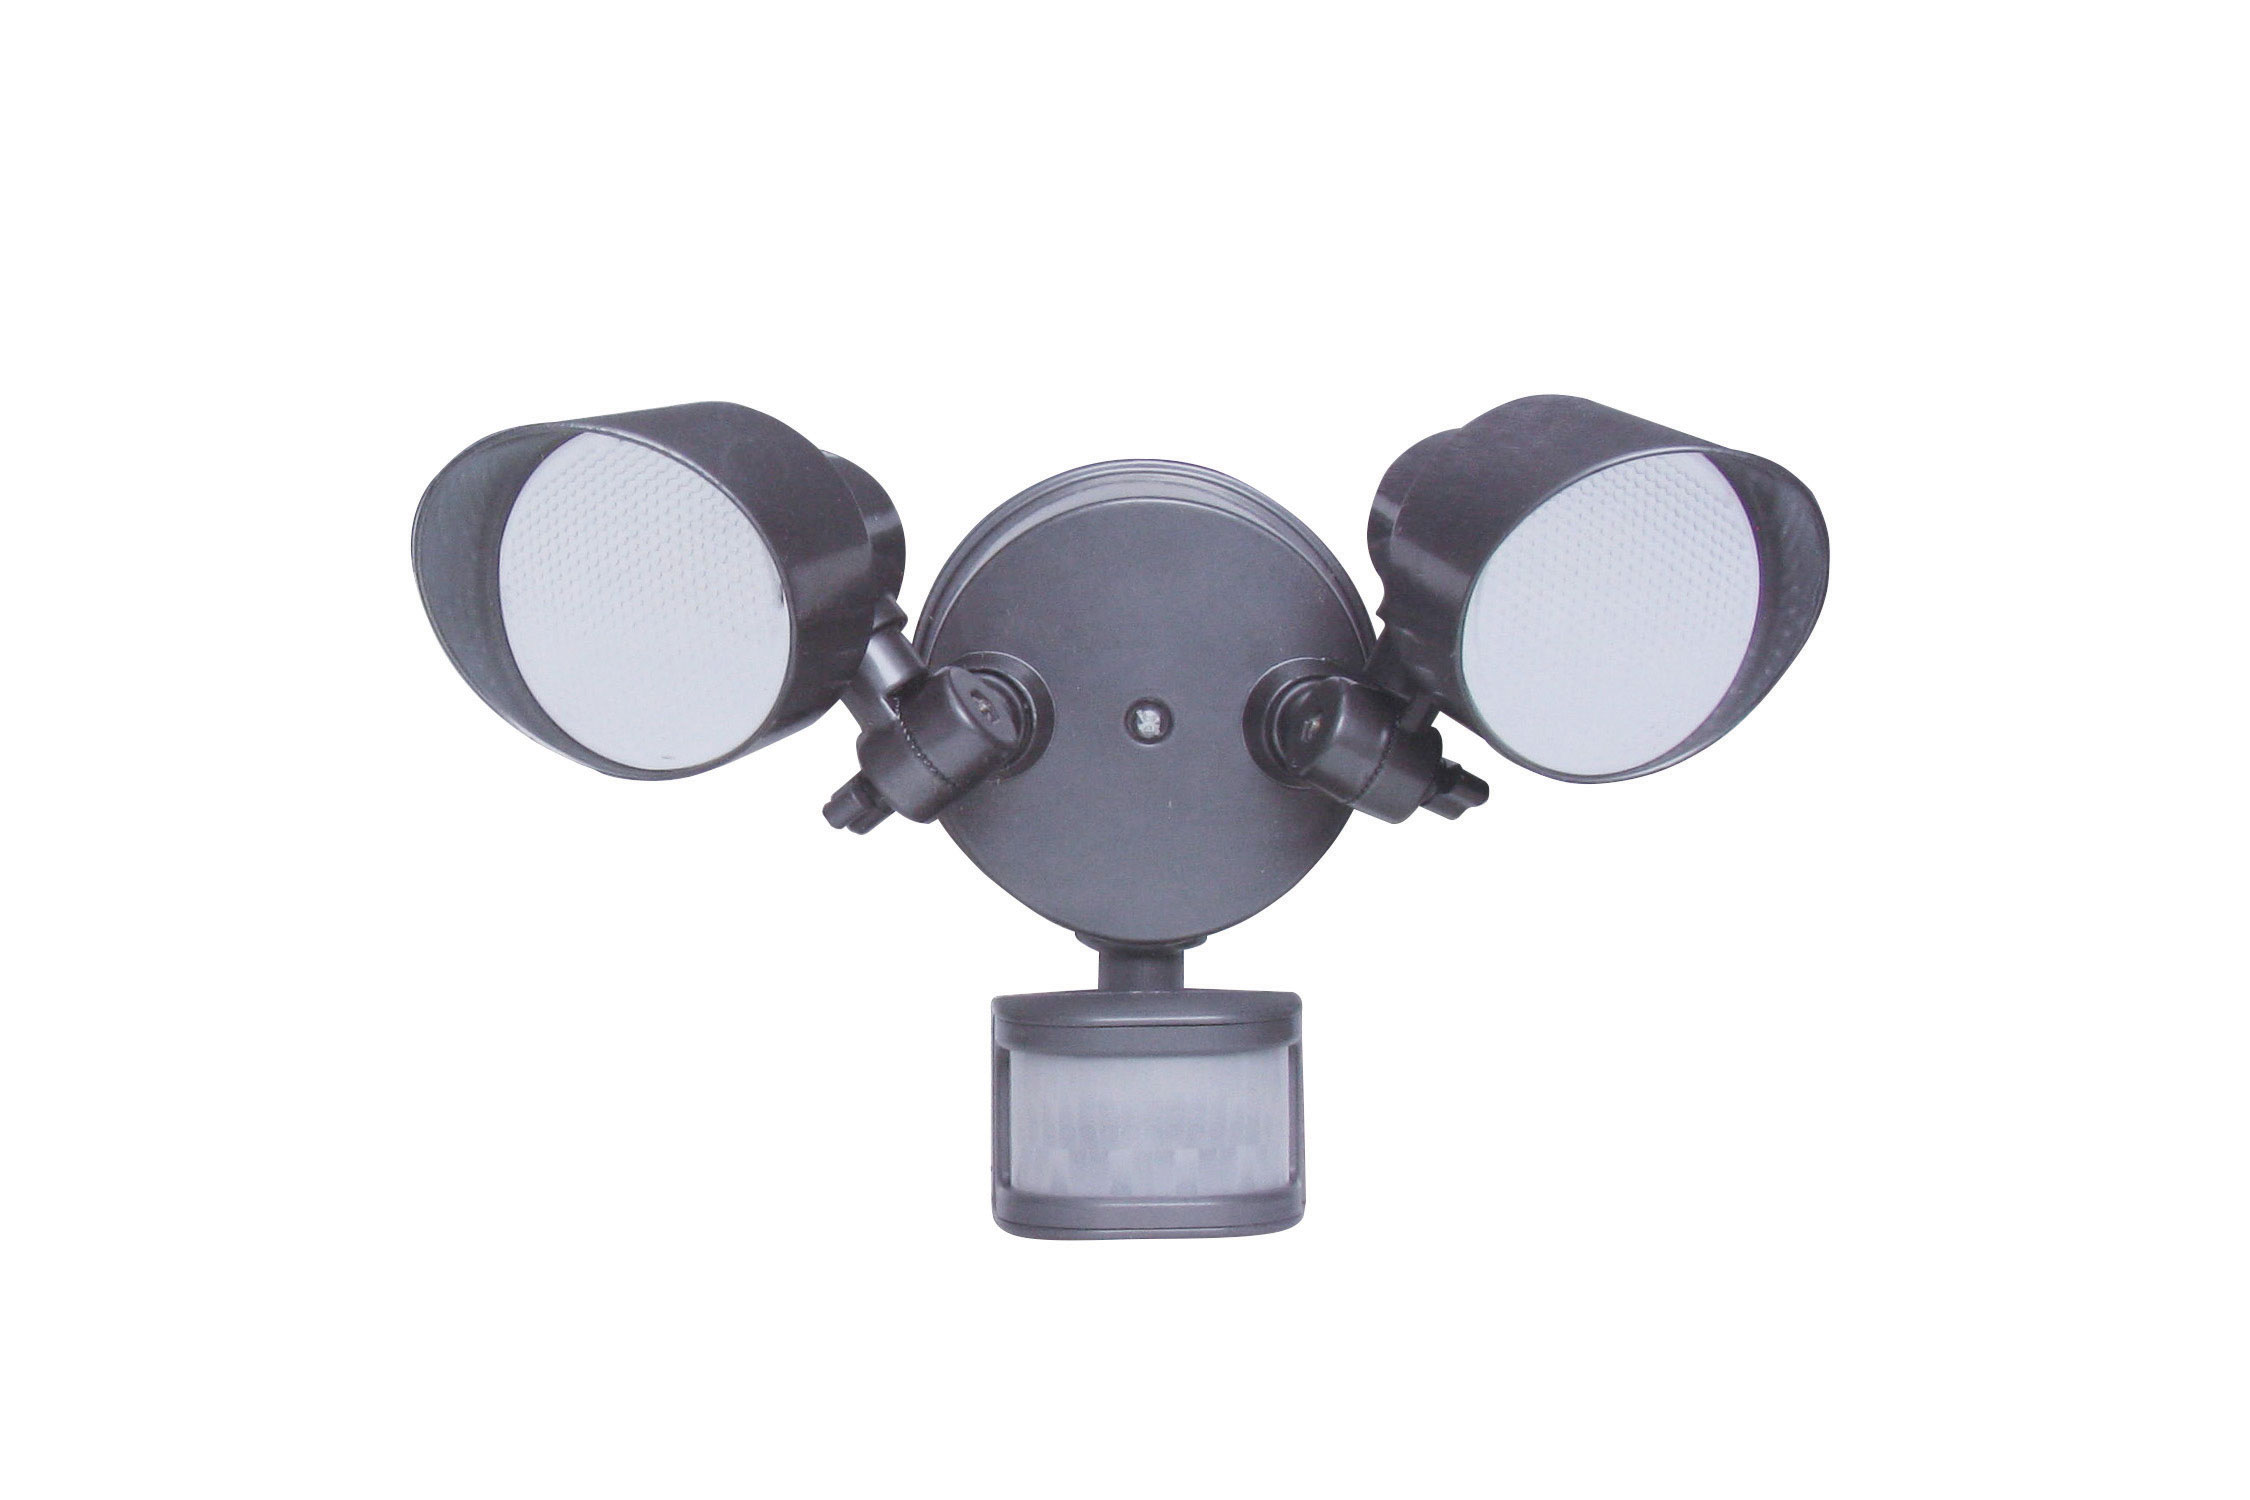 Honeywell Floodlight